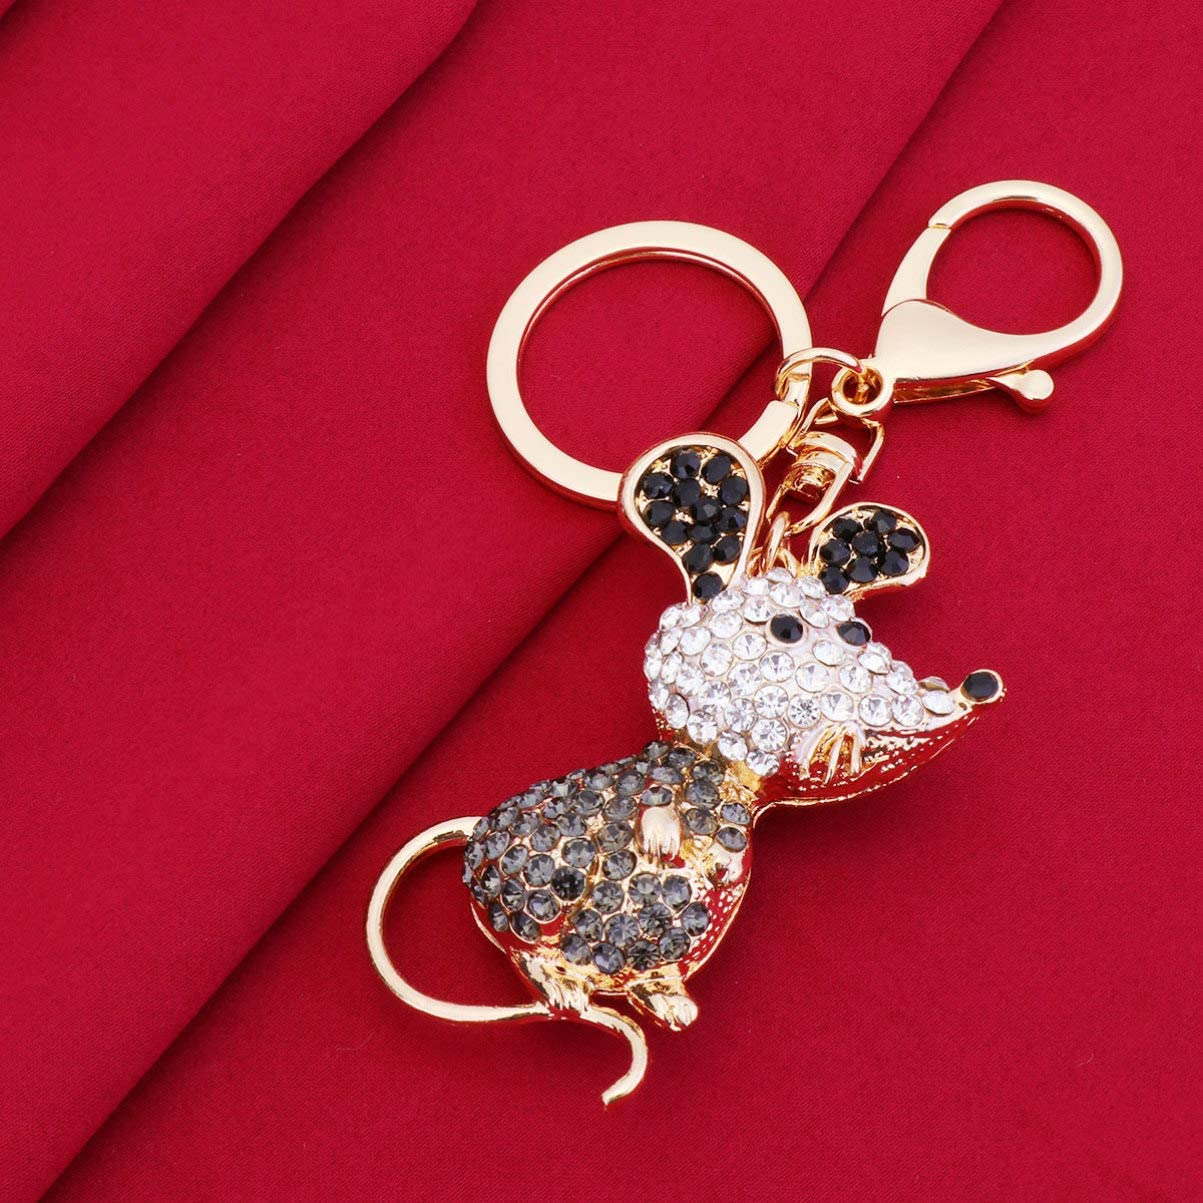 Amosfun Mouse Rat Keychain Keyring Crystal Rhinestone Keyring Alloy Chinese Zodiac Charms Keychain Happy Lunar New Year Party Gifts for Kids Woman Black 1